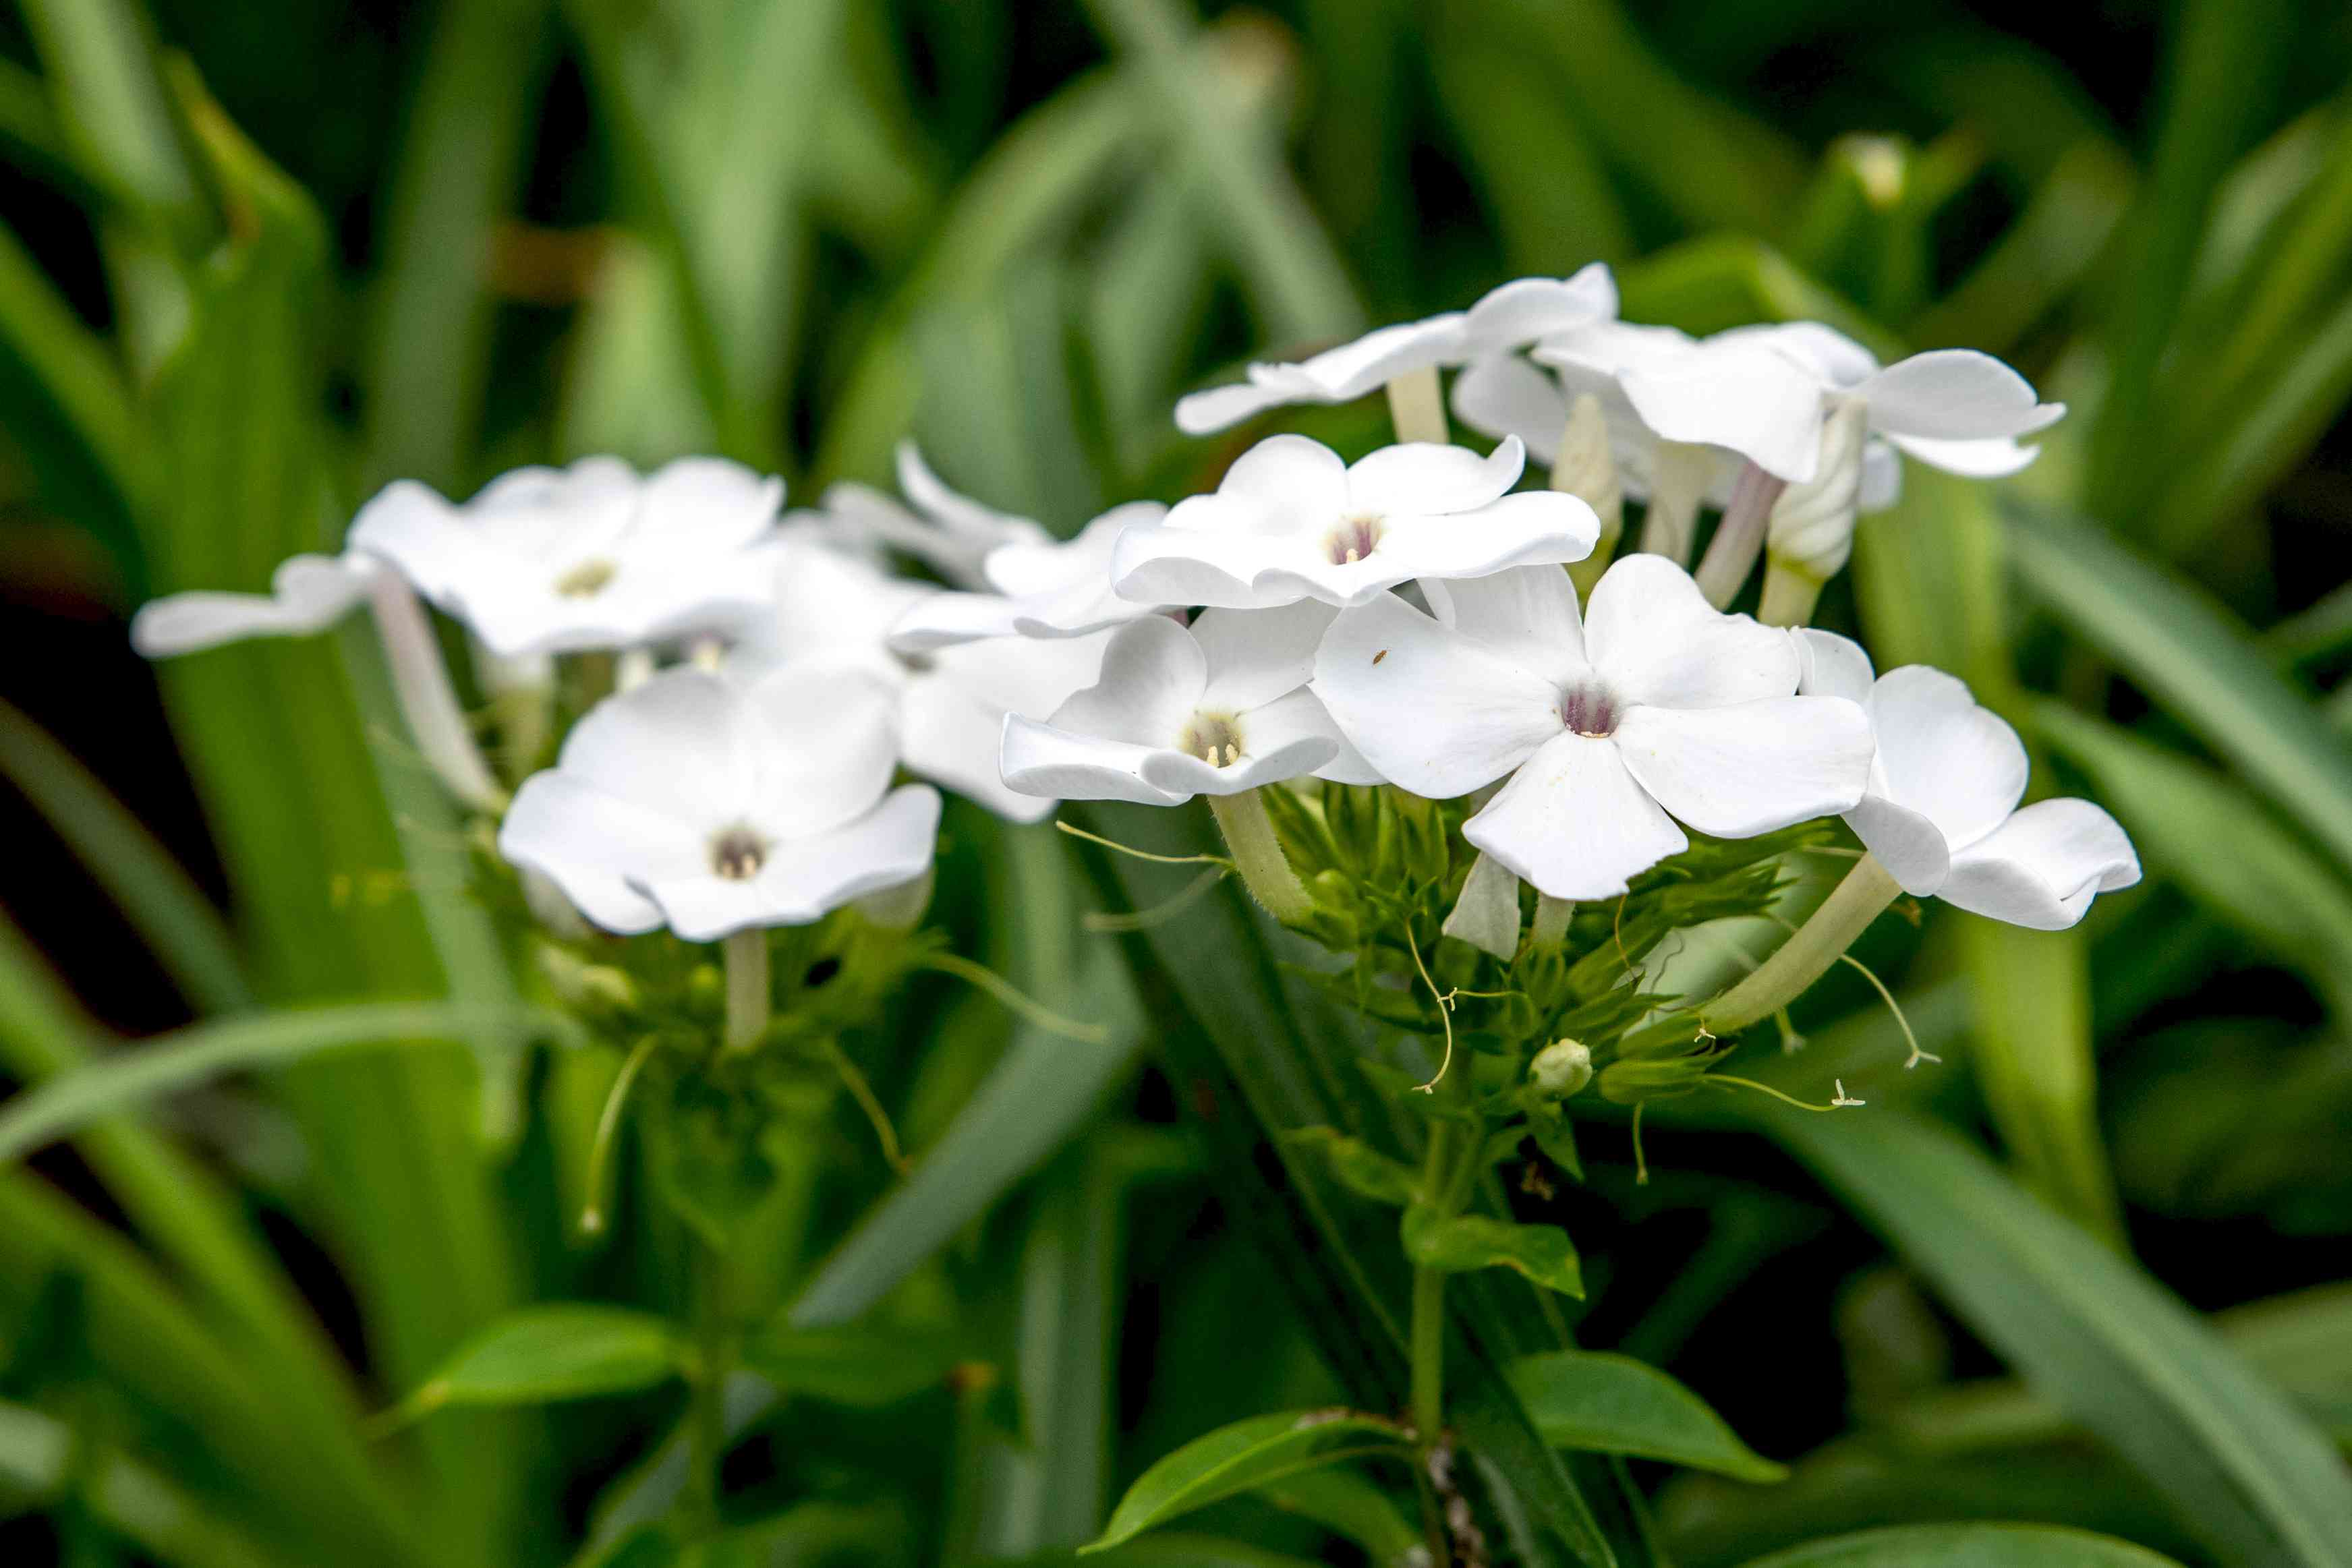 'David' garden phlox plant with small white flowers clustered with buds on stem closeup